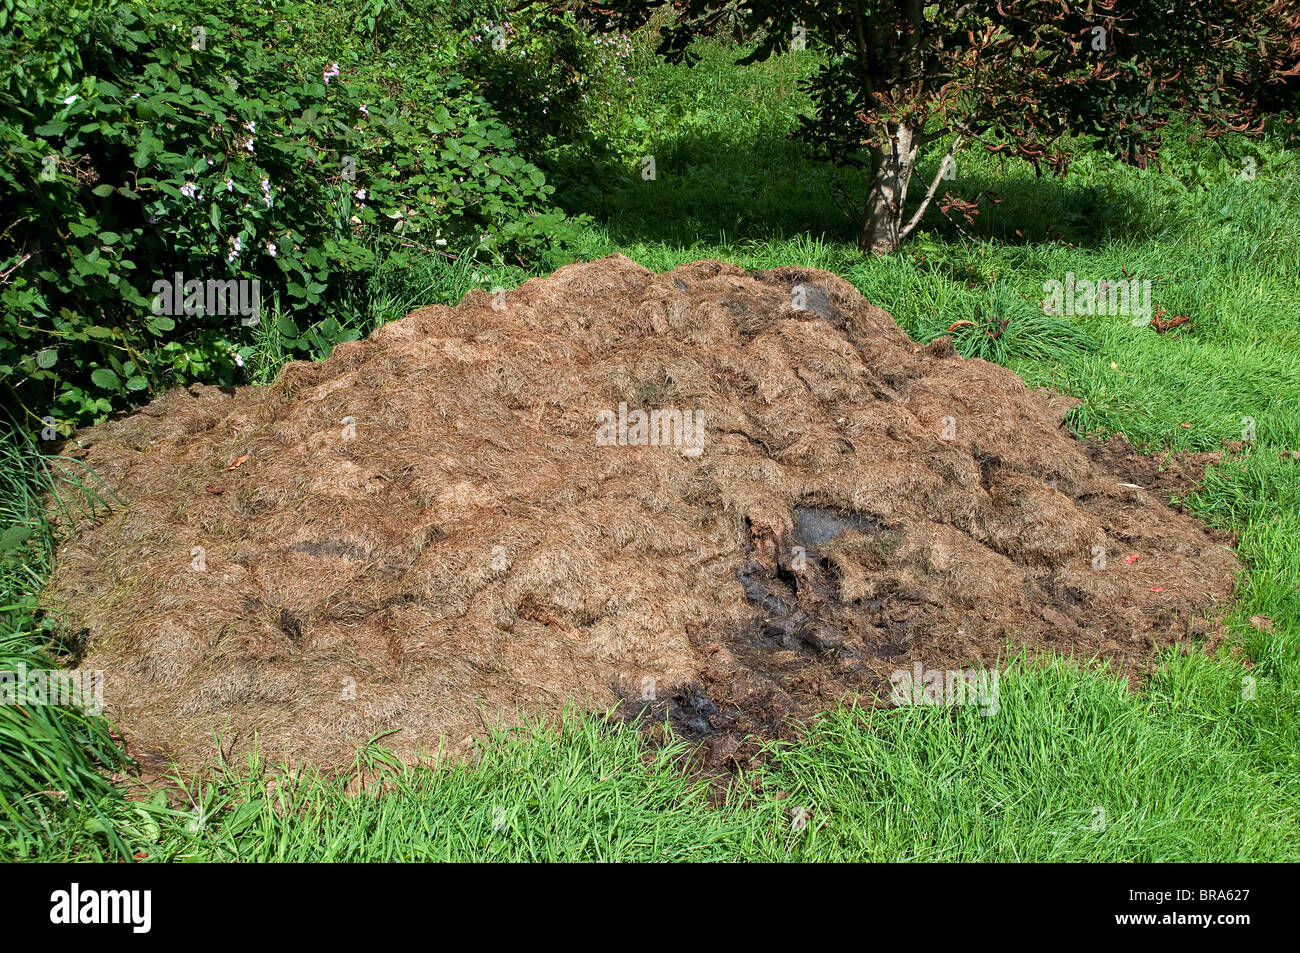 a pile of grass cuttings being left to make compost - Stock Image